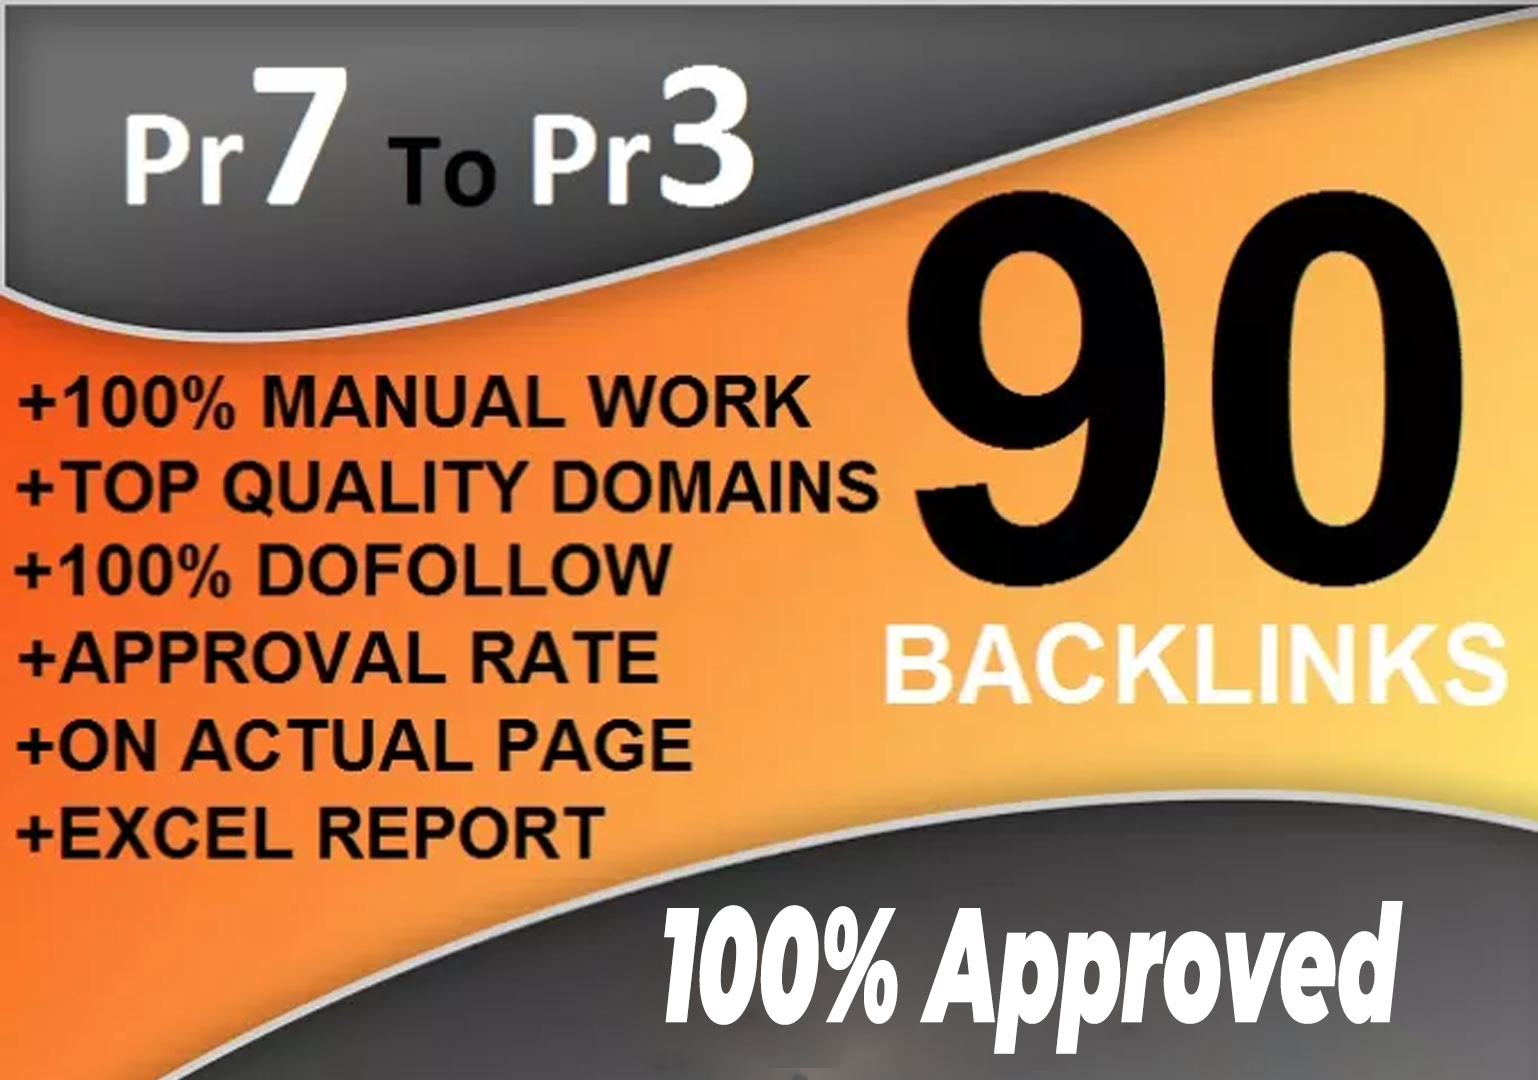 create 90 dofollow backlinks blog comments on actual page dofollow link building